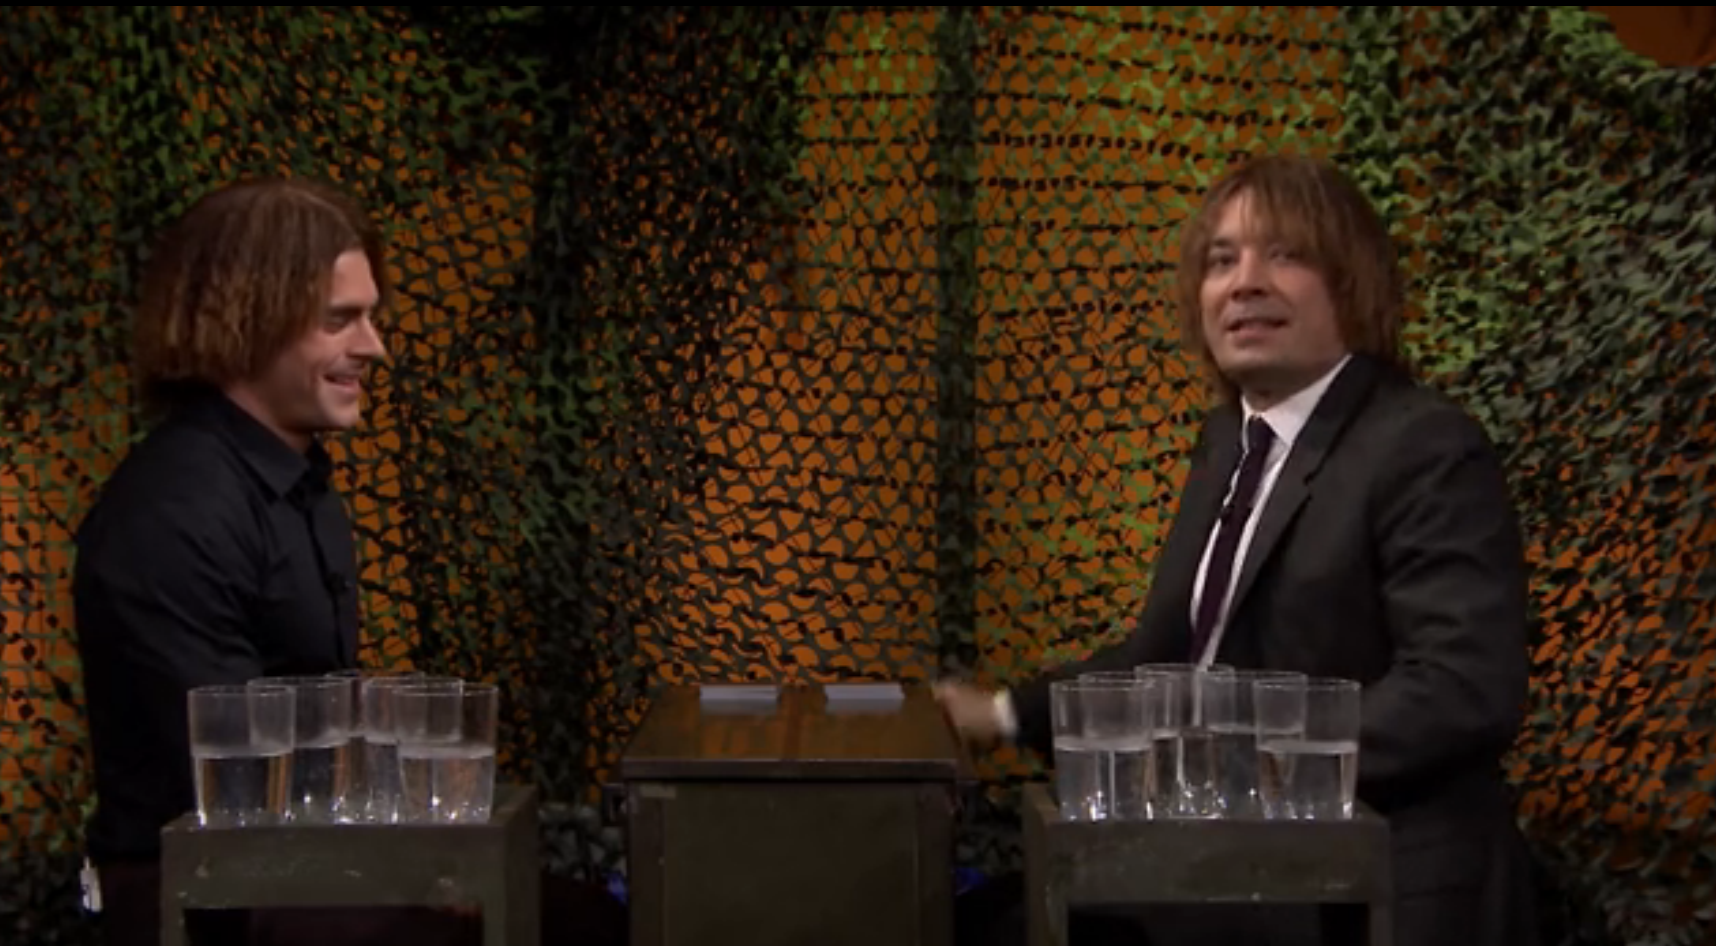 Jimmy and Zac Efron face off in a twist on the card game War, where the loser of each hand faces wet consequences on The Tonight Show Starring Jimmy Fallon on May 18, 2016.